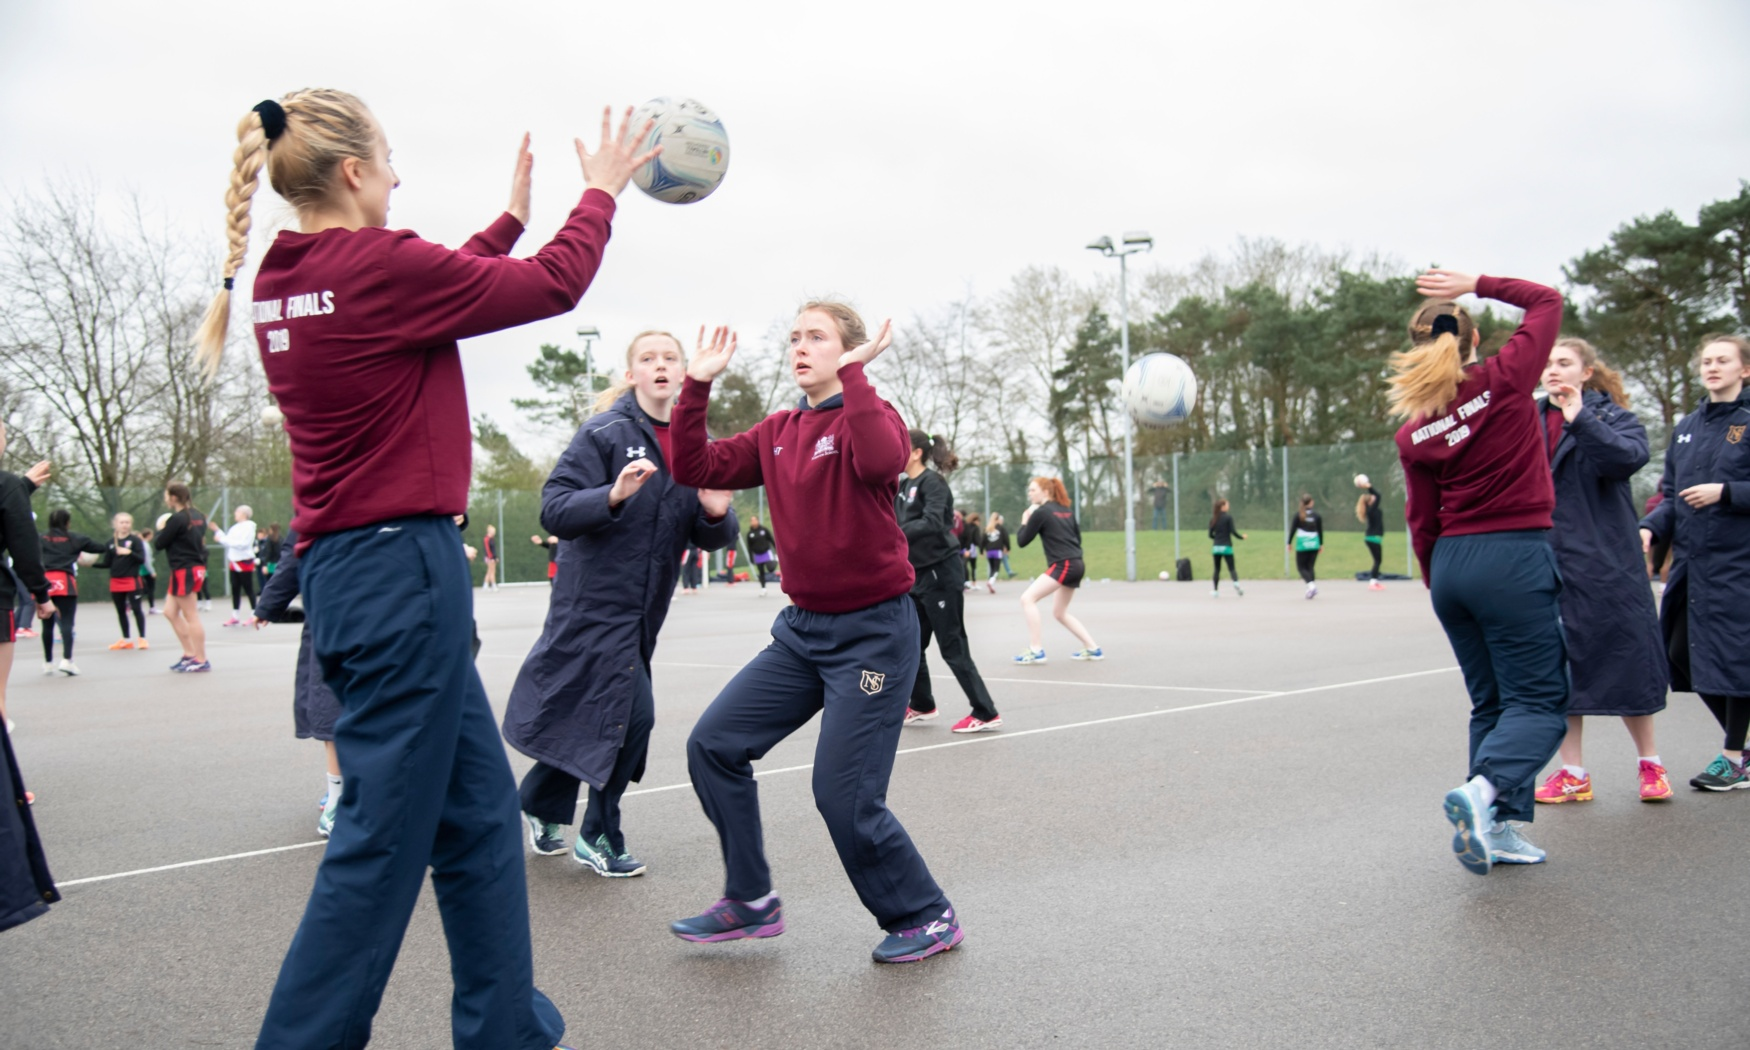 Netball Nationsal_March2019_004.jpg